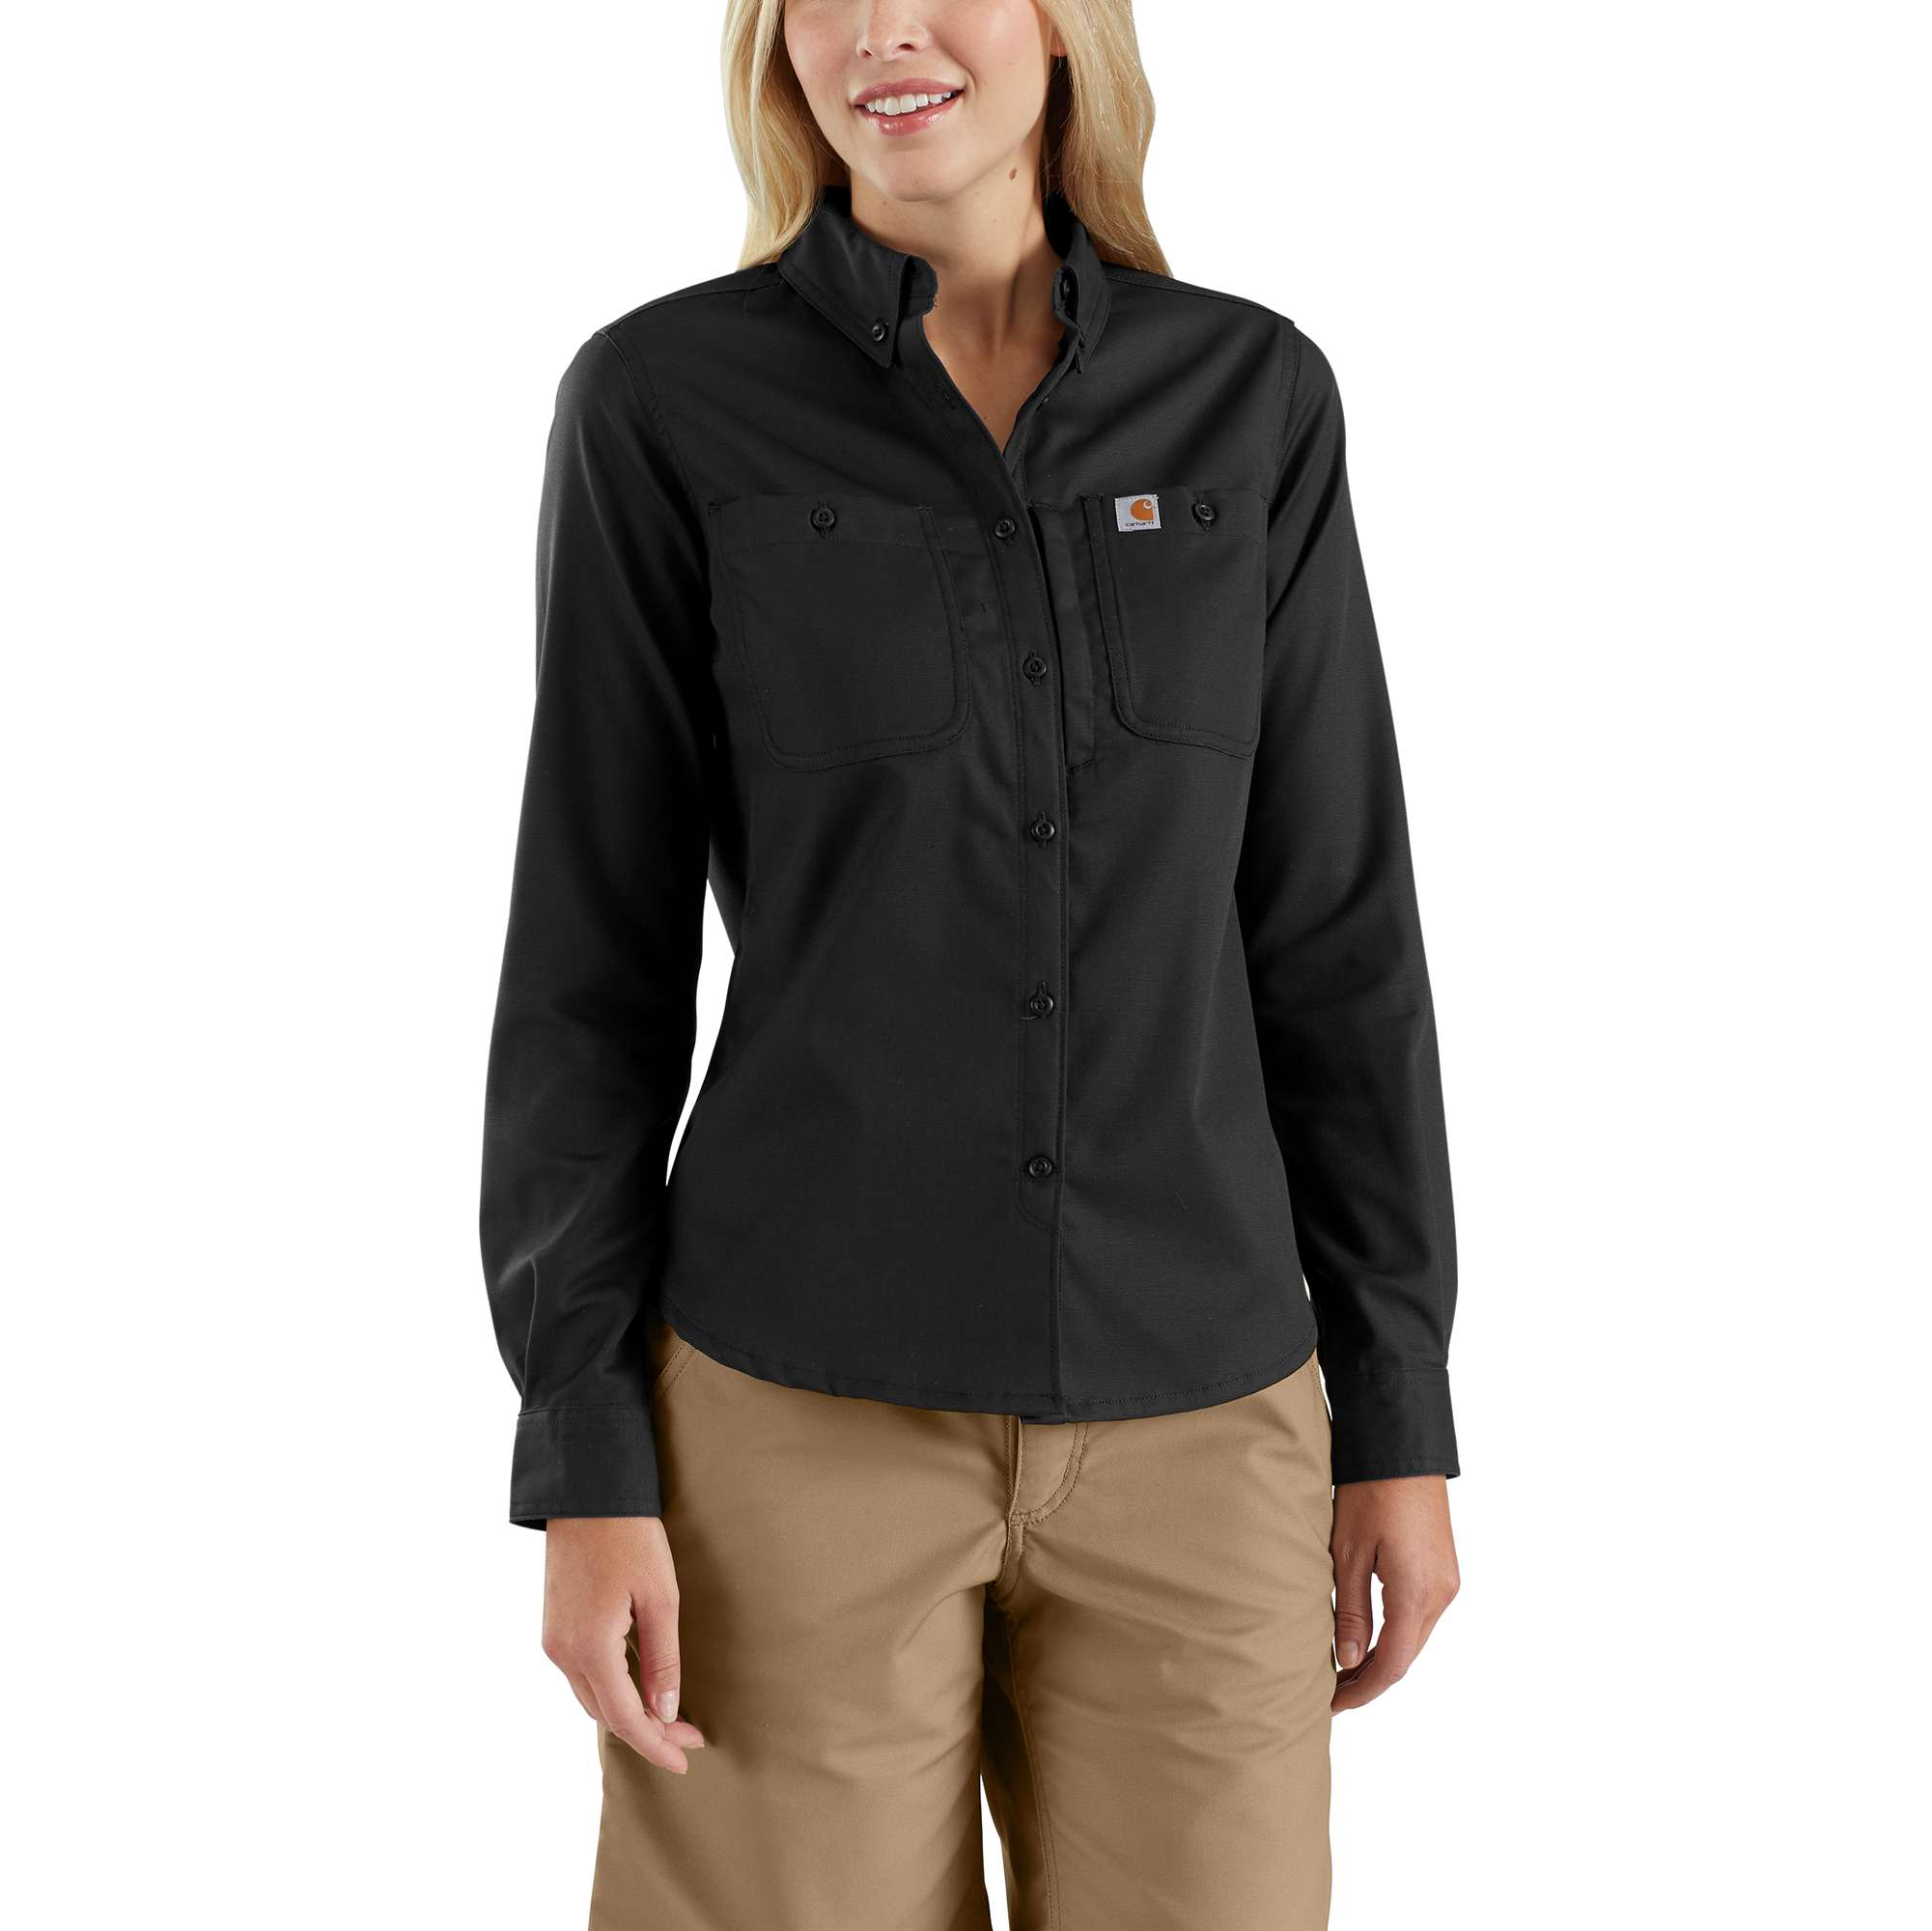 Rugged Professional™ Series Long-Sleeve Shirt - Women